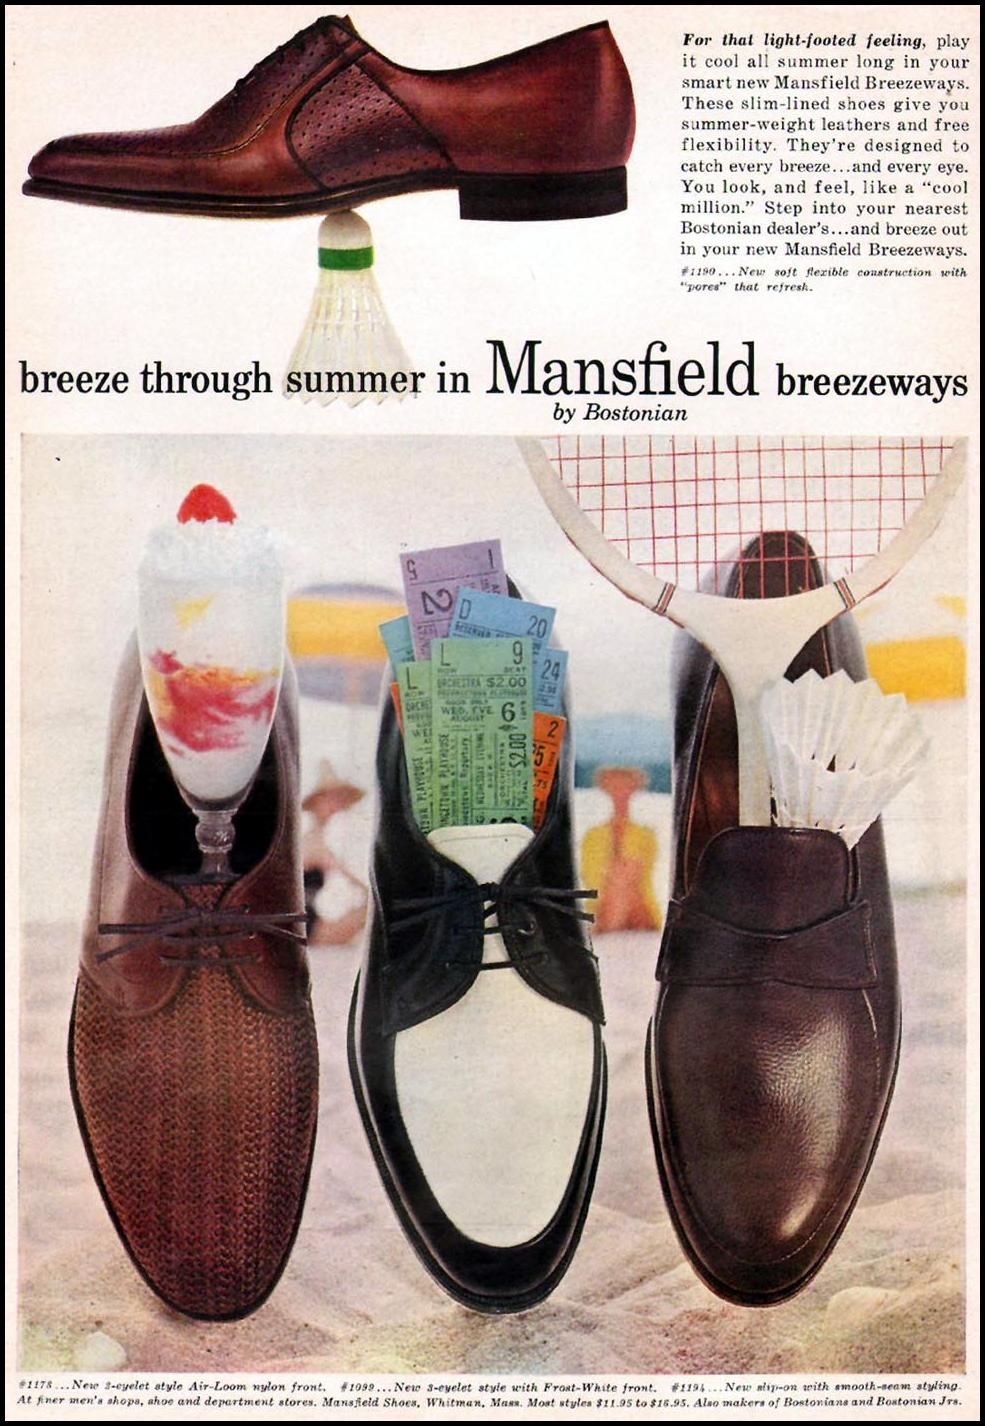 MANSFIELD BREEZEAWAY SHOES SPORTS ILLUSTRATED 05/11/1959 p. 86